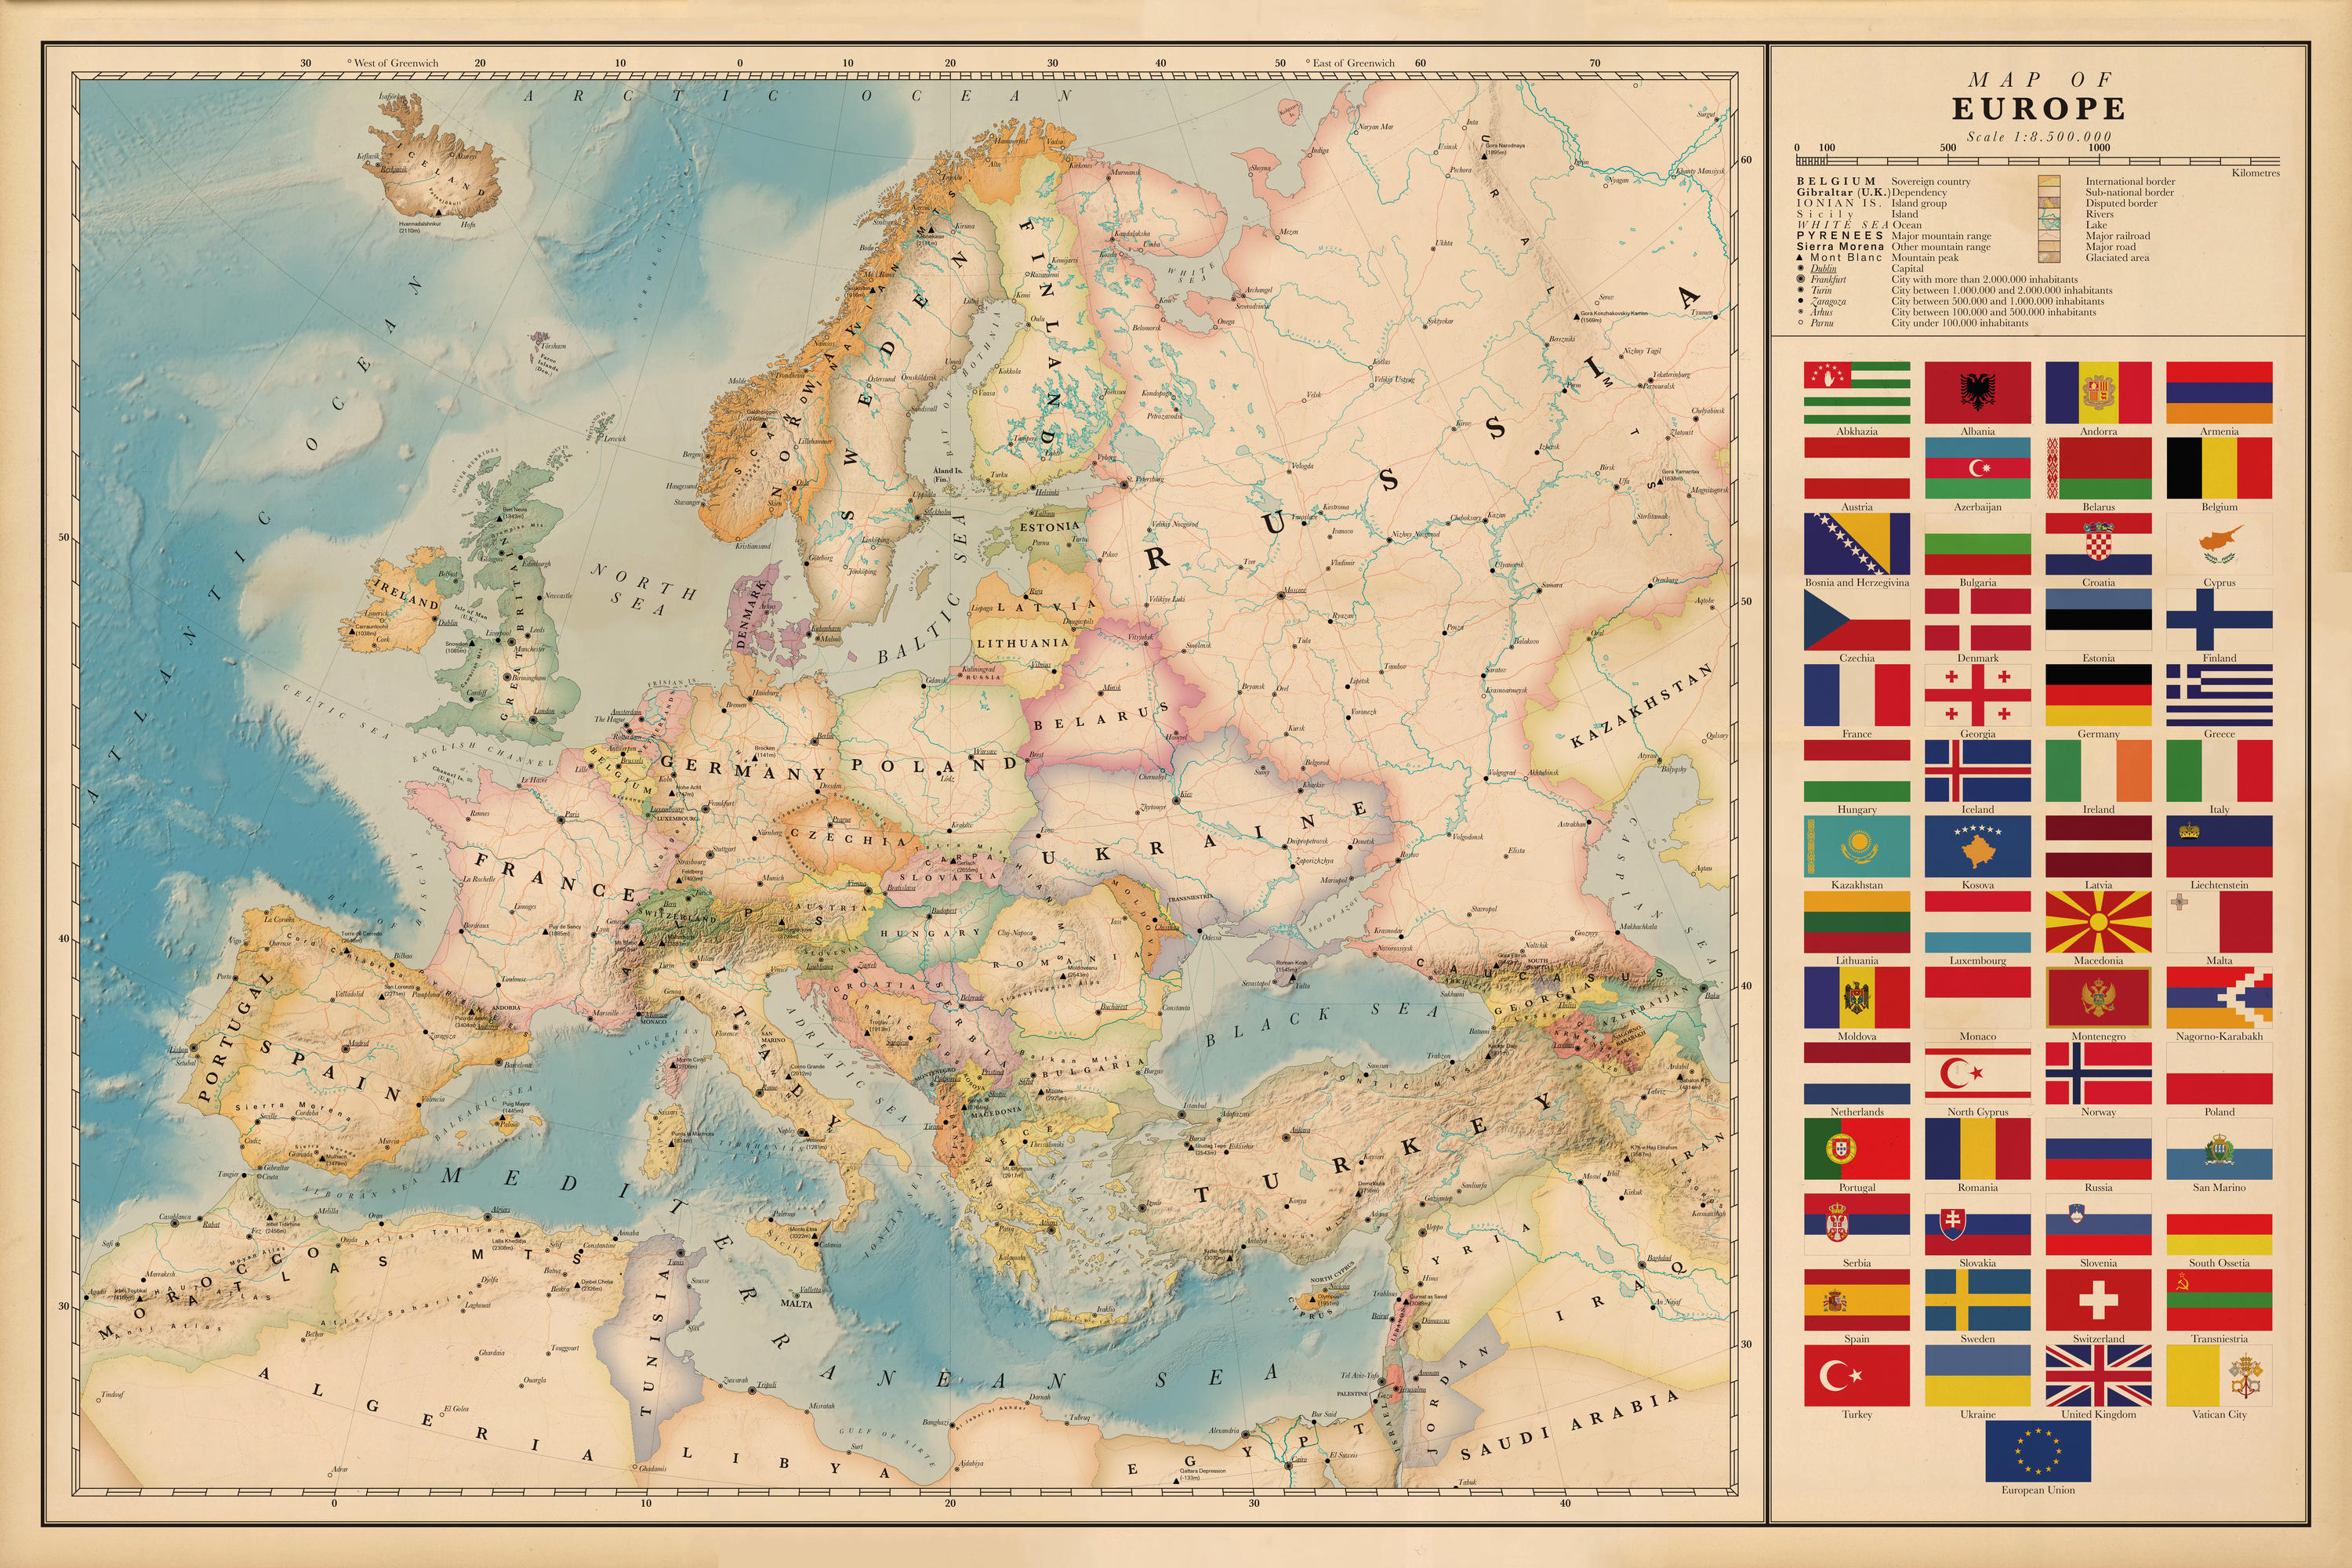 Map of Europe - Vintage poster by Regicollis